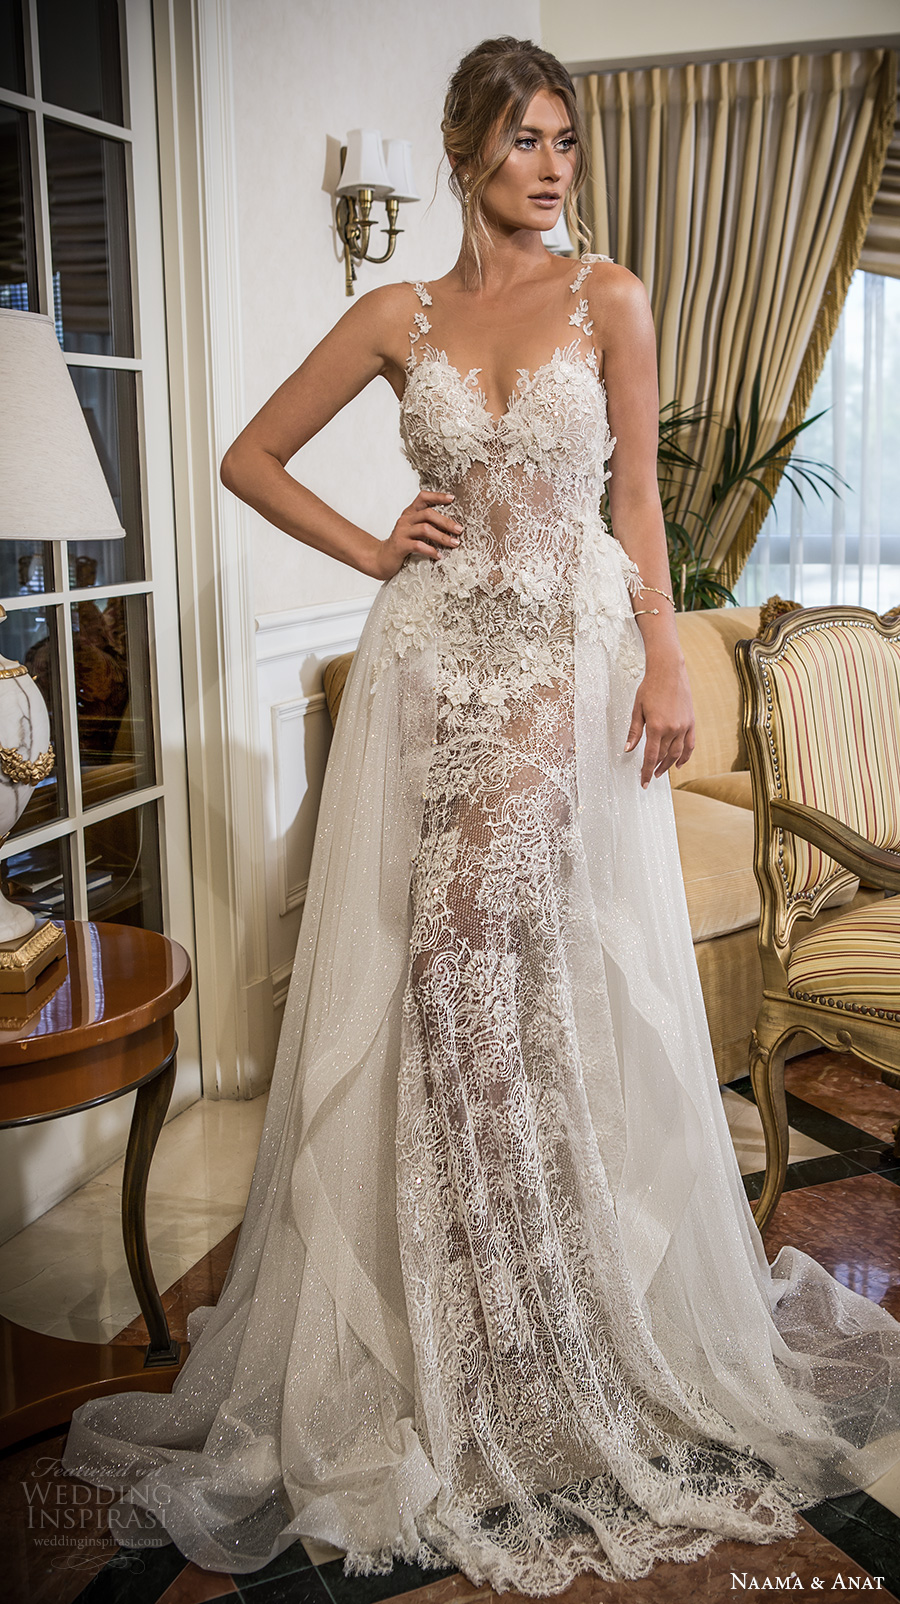 fef5b1f83cf7 naama and anat 2018 bridal lace thin strap sweetheart neckline full  embellishment elegant fit and flare